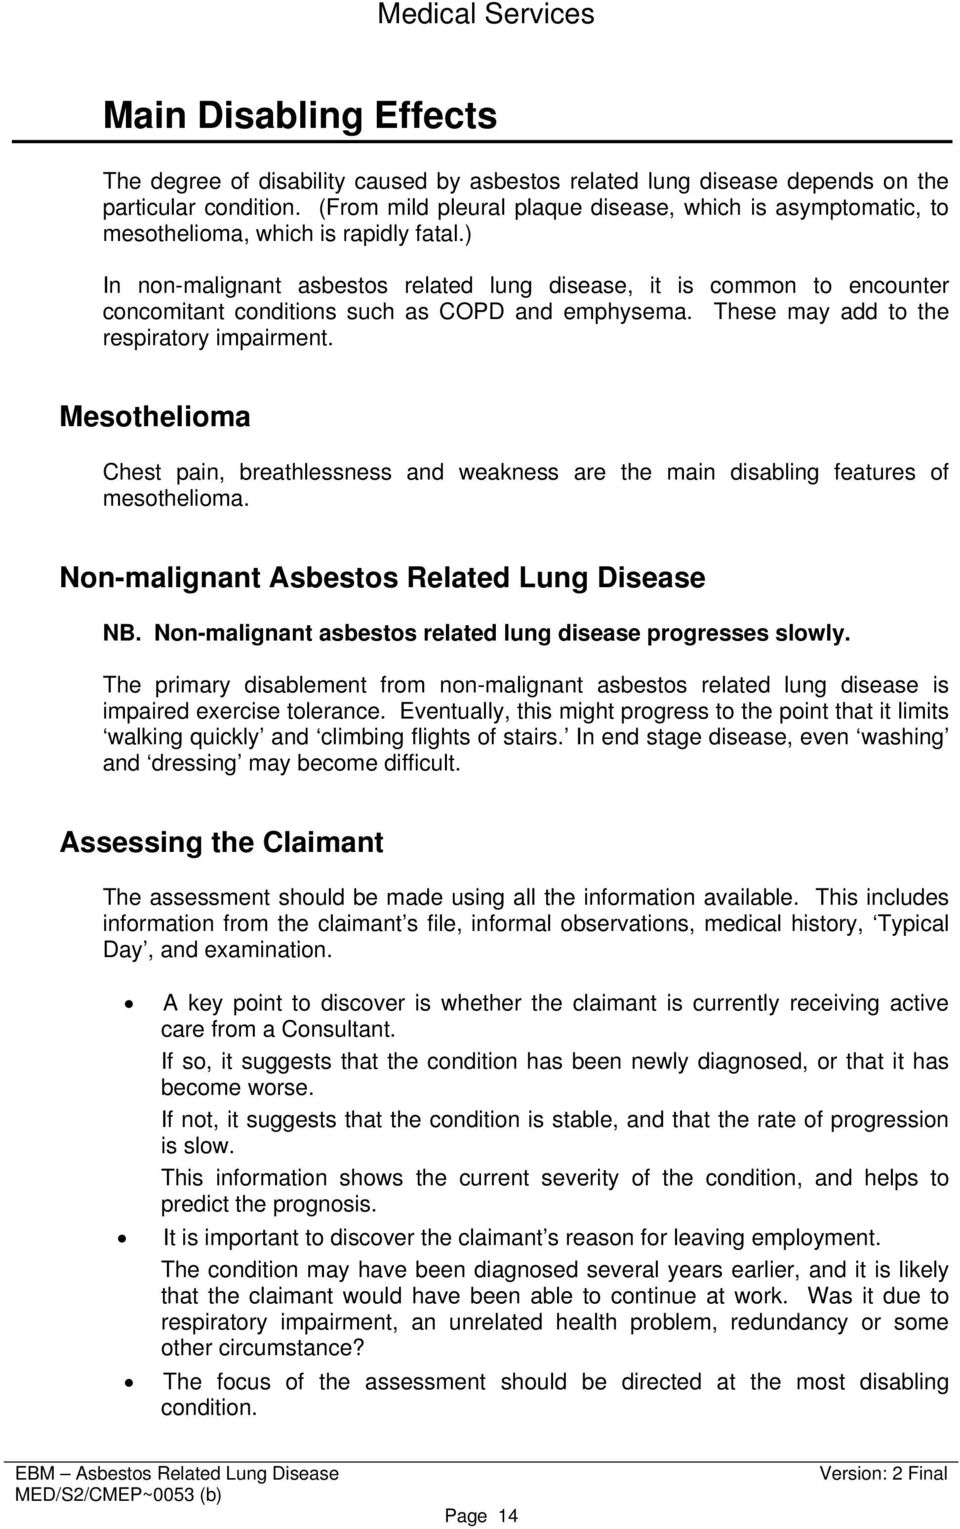 ) In non-malignant asbestos related lung disease, it is common to encounter concomitant conditions such as COPD and emphysema. These may add to the respiratory impairment.